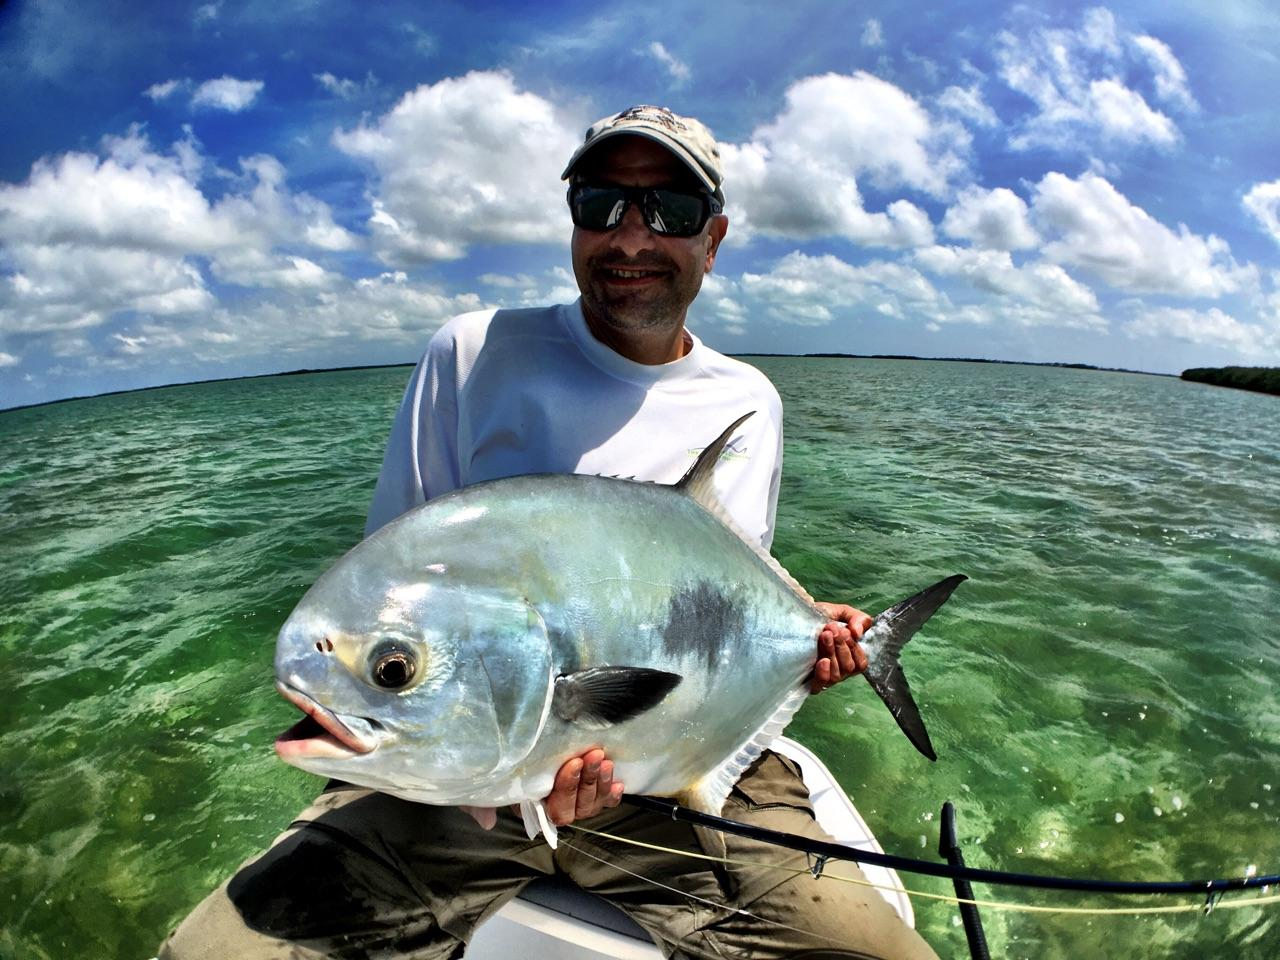 key west fishing report Key West April Fishing Report 2016 | Key West Fishing